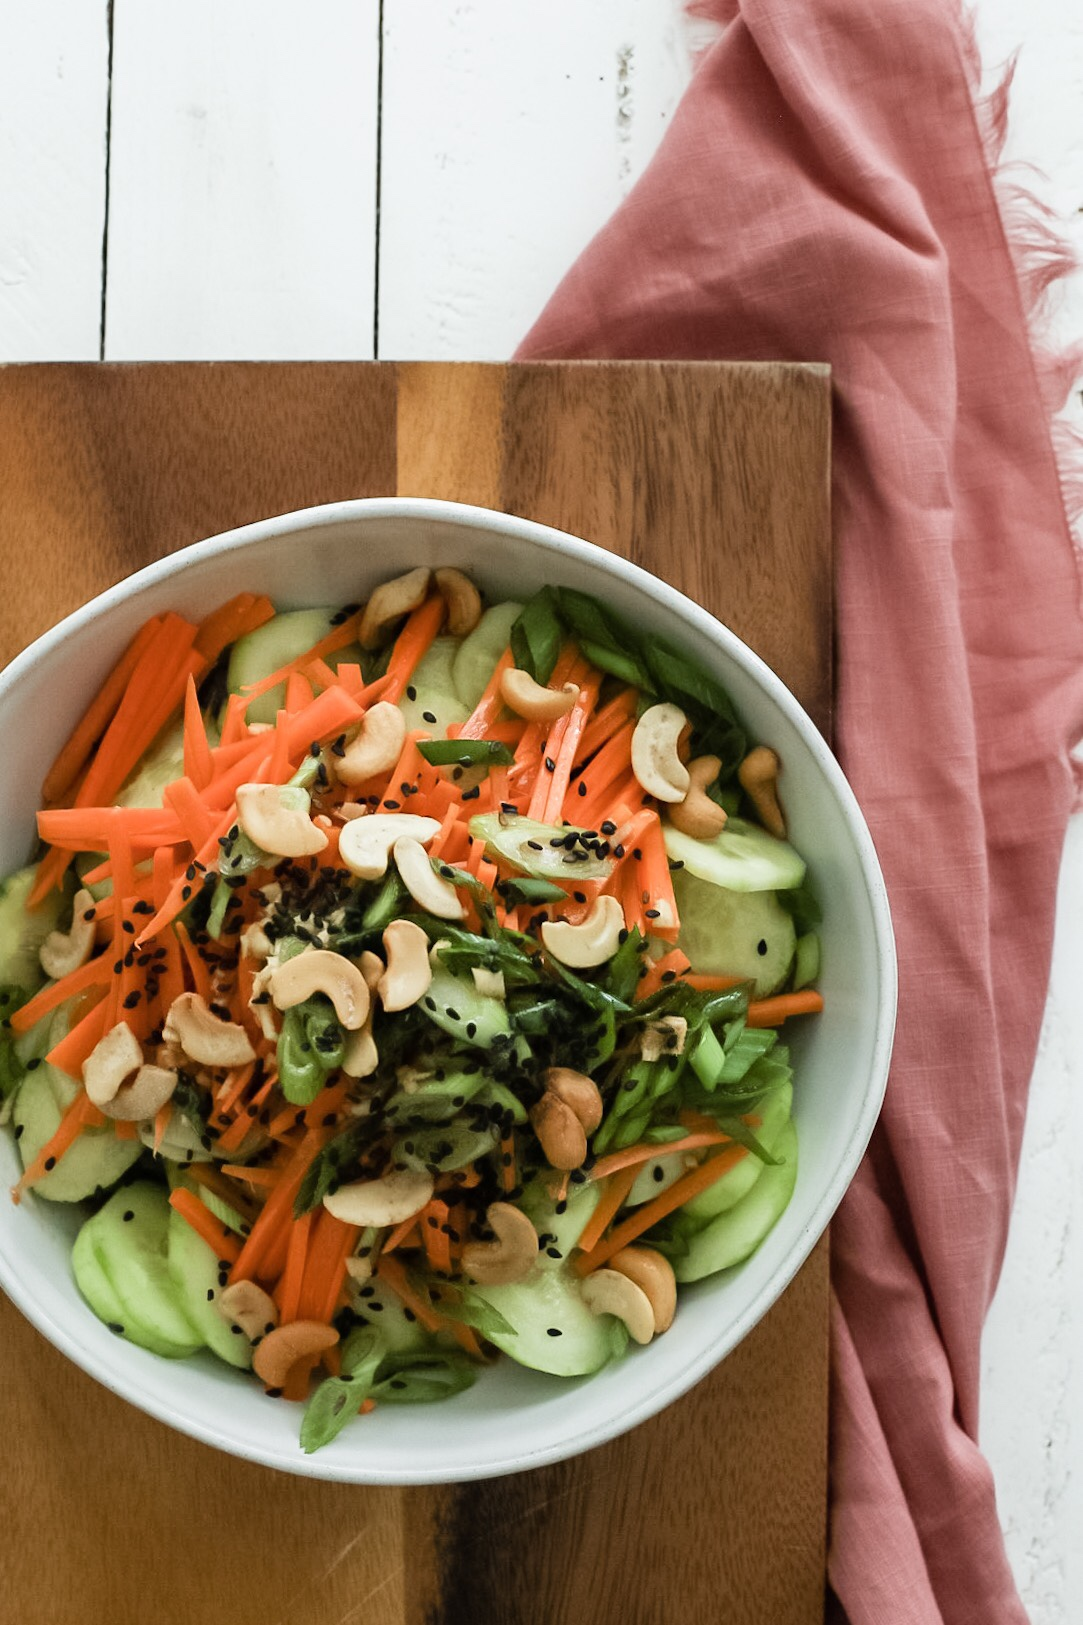 Cucumber Carrot Salad with Ginger Sesame Dressing-1.jpeg